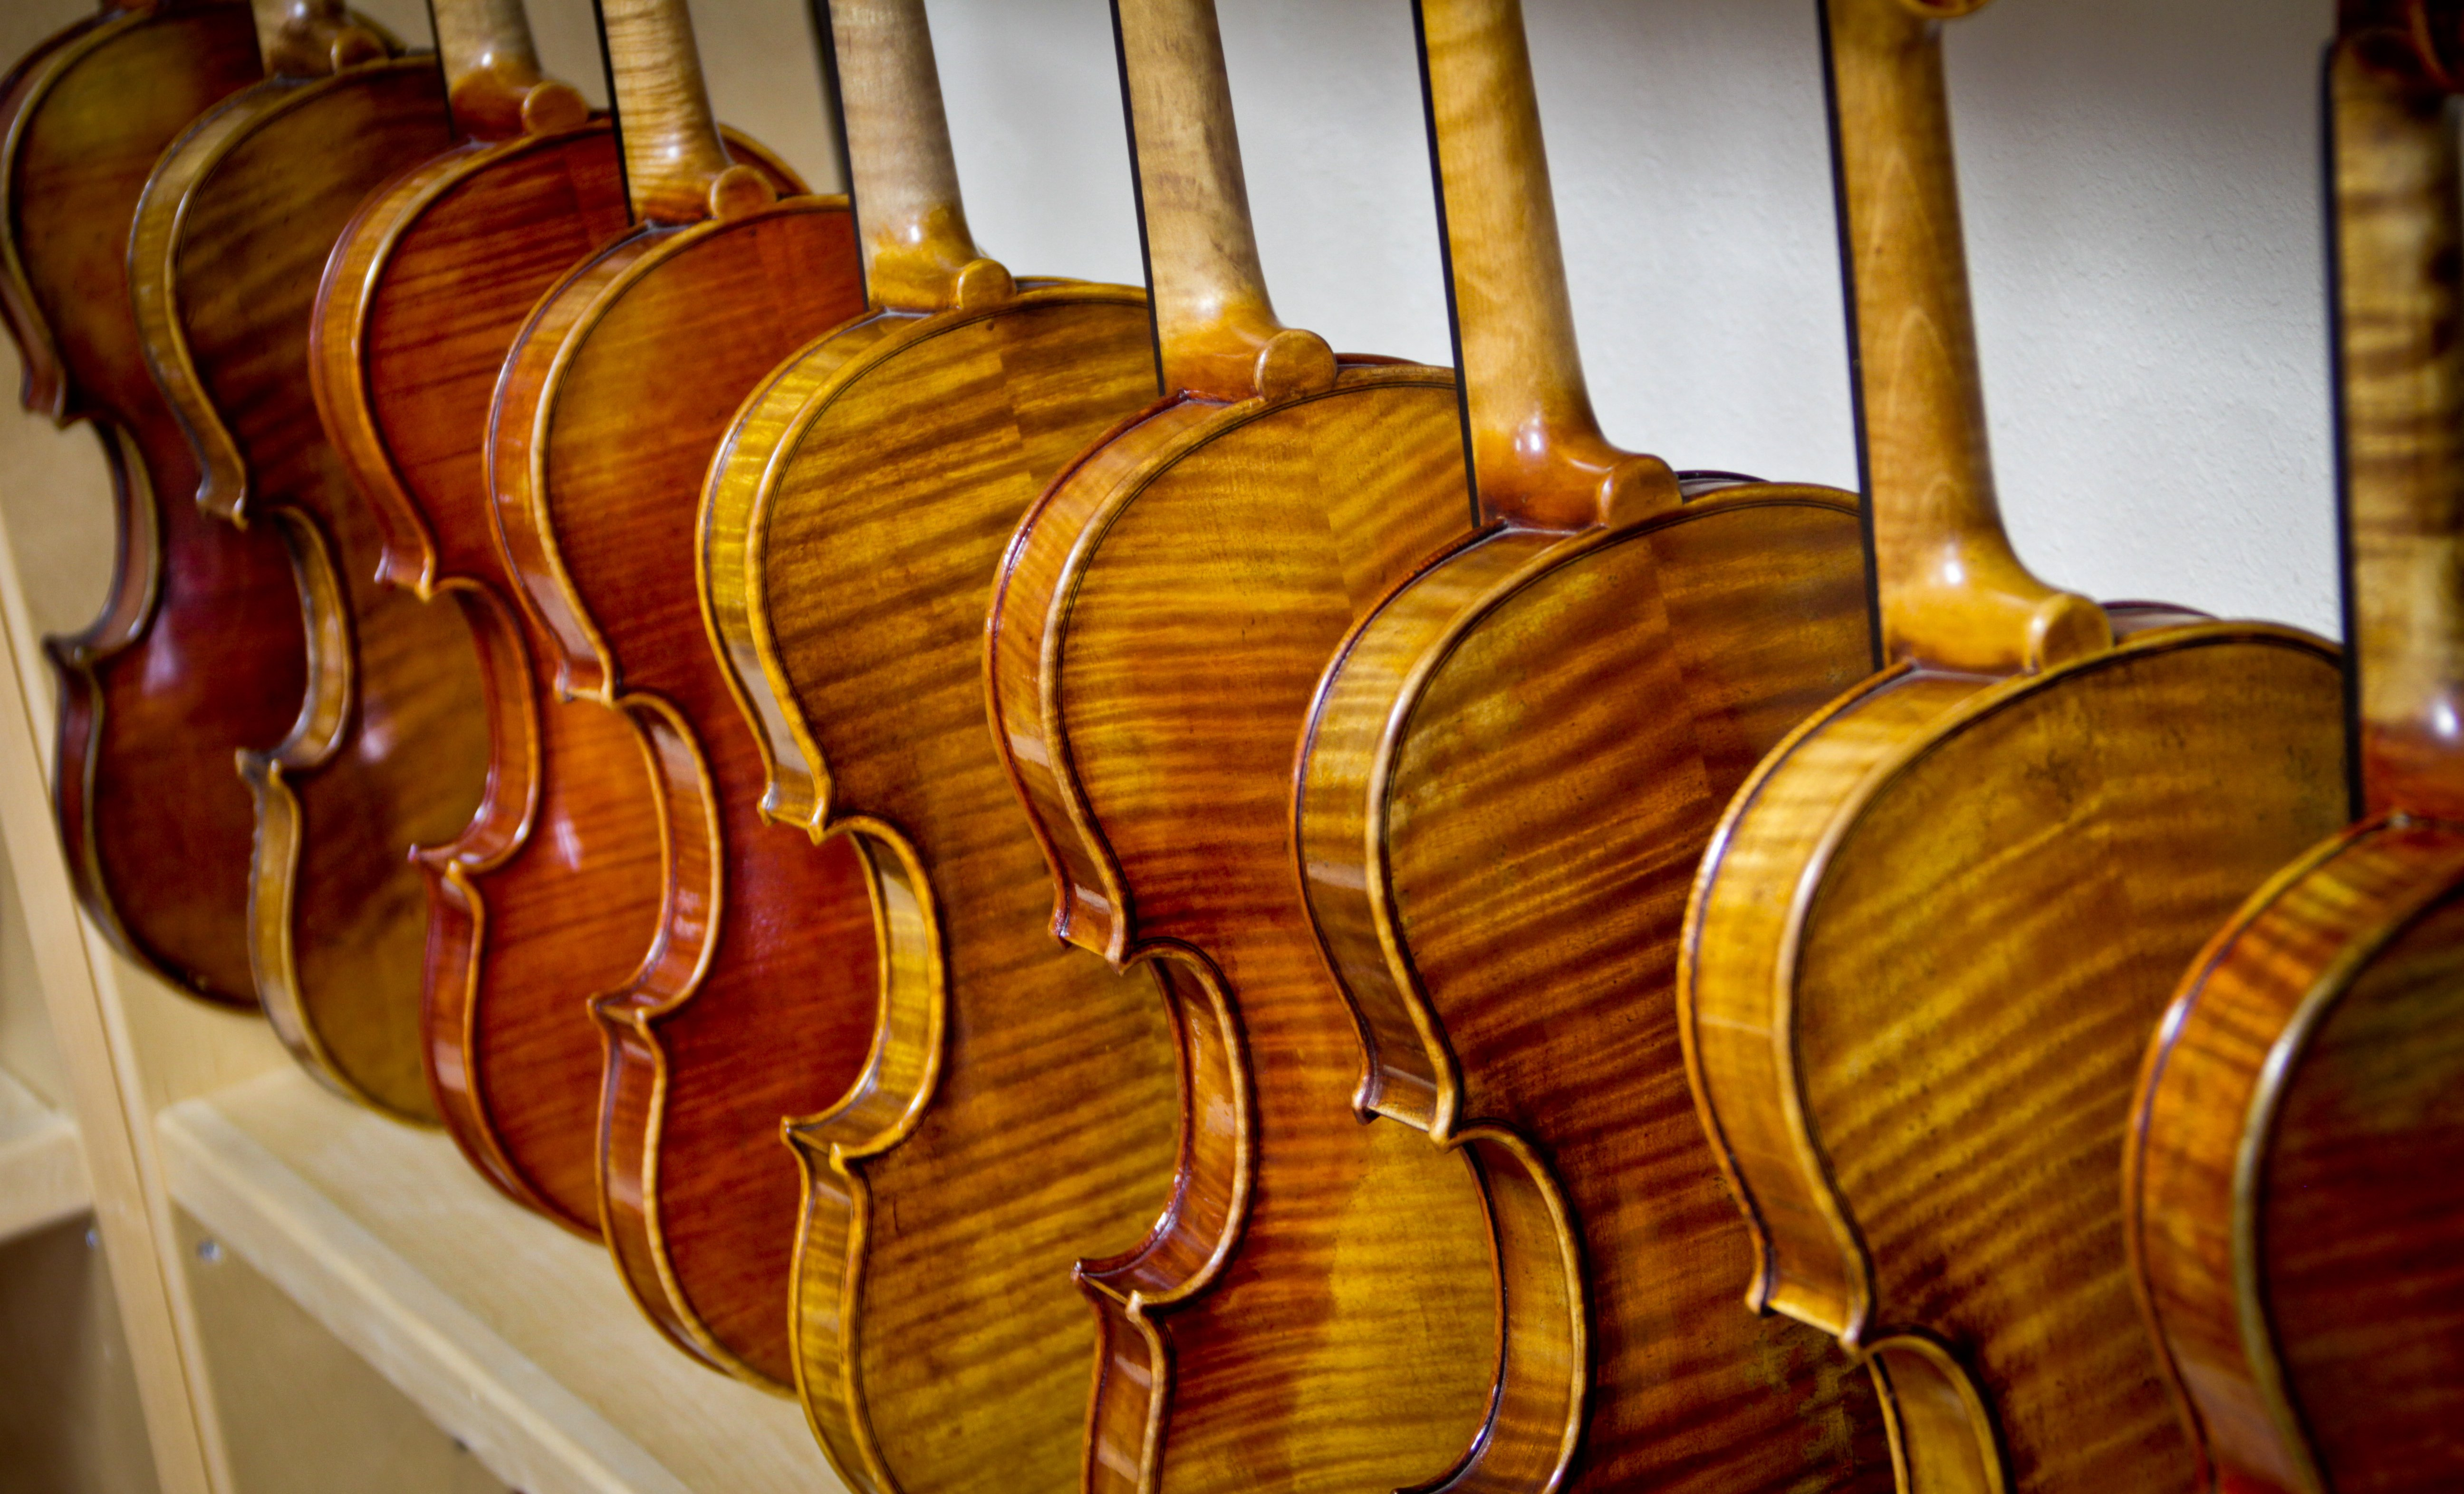 Violin Restoration San Antonio, TX